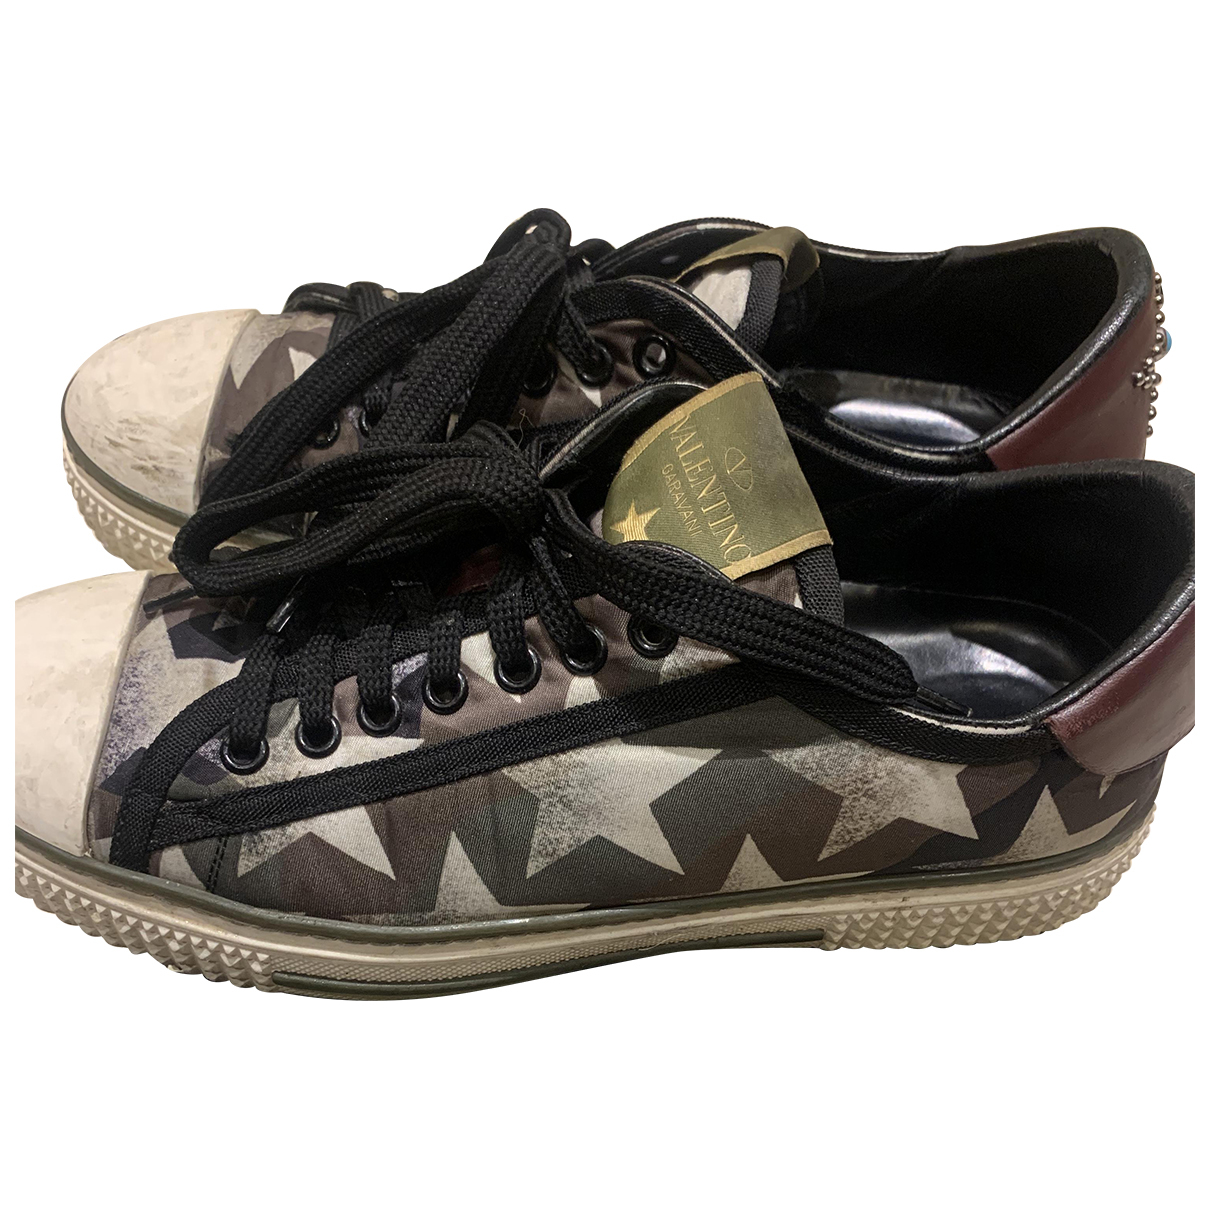 Valentino Garavani N Khaki Trainers for Women 39 EU